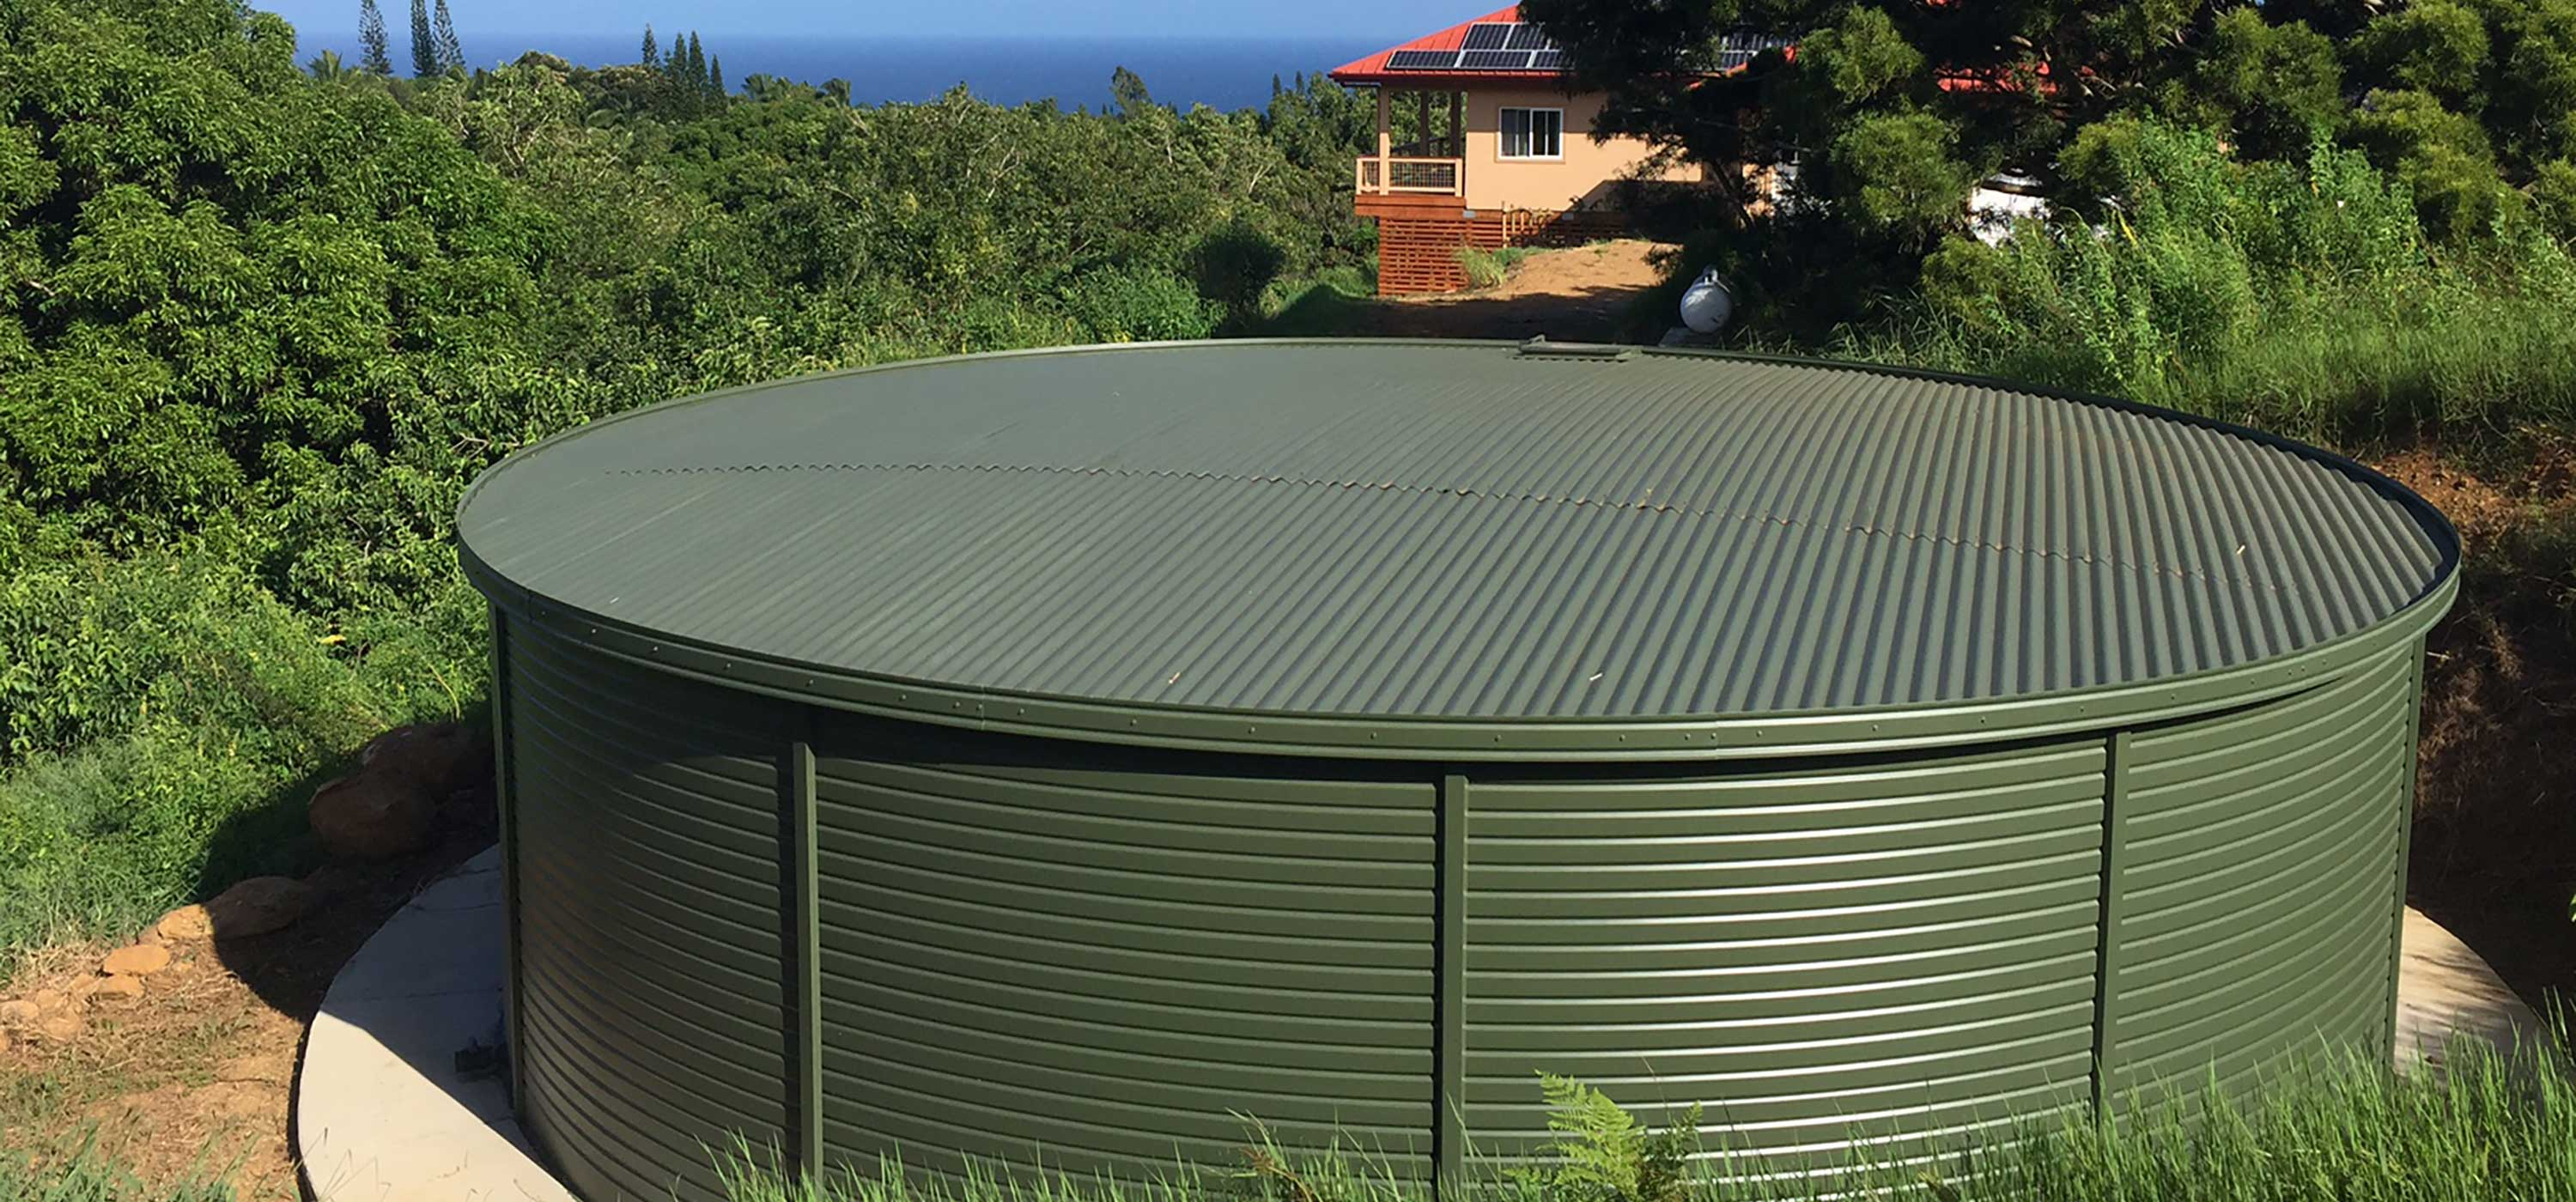 Residential water storage systems